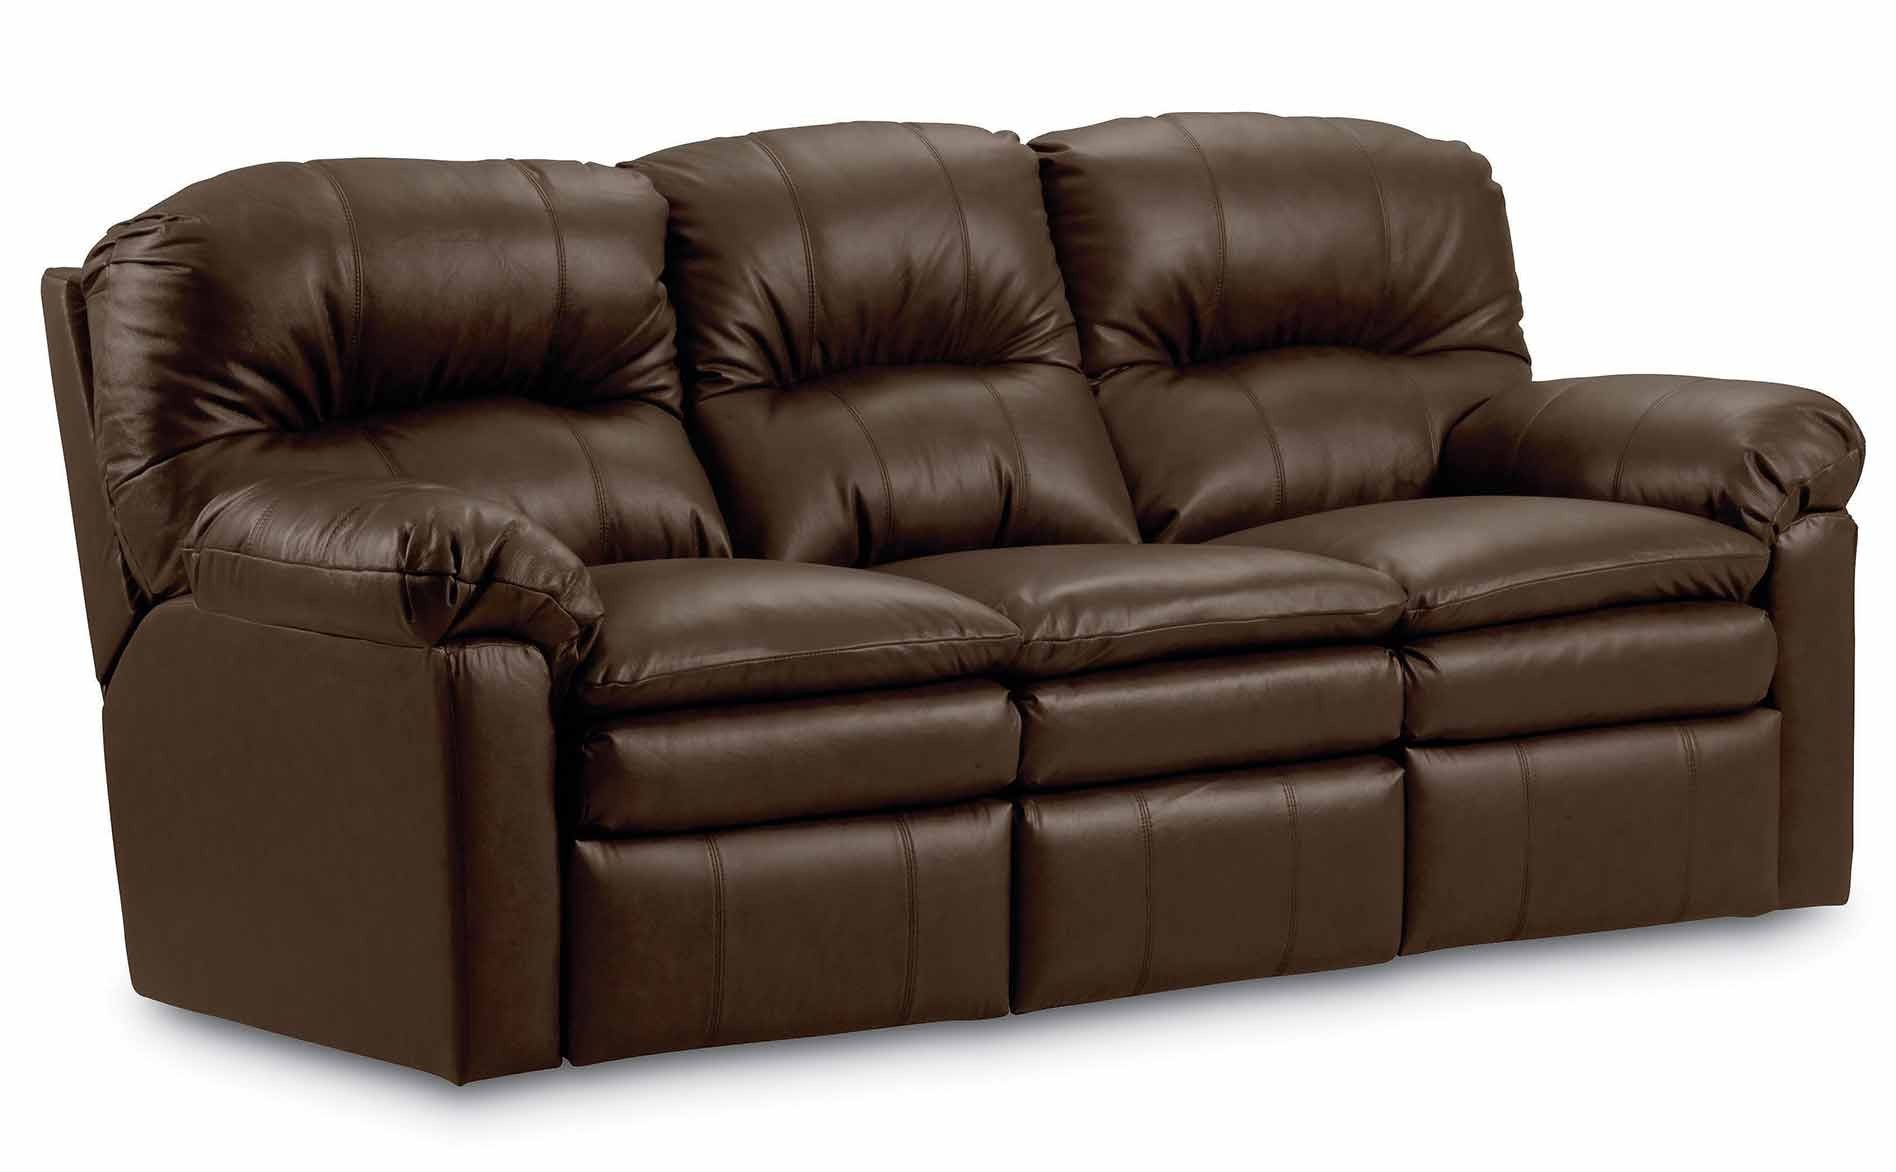 Lane Leather Reclining Sofa Evans Double Reclining Sofa